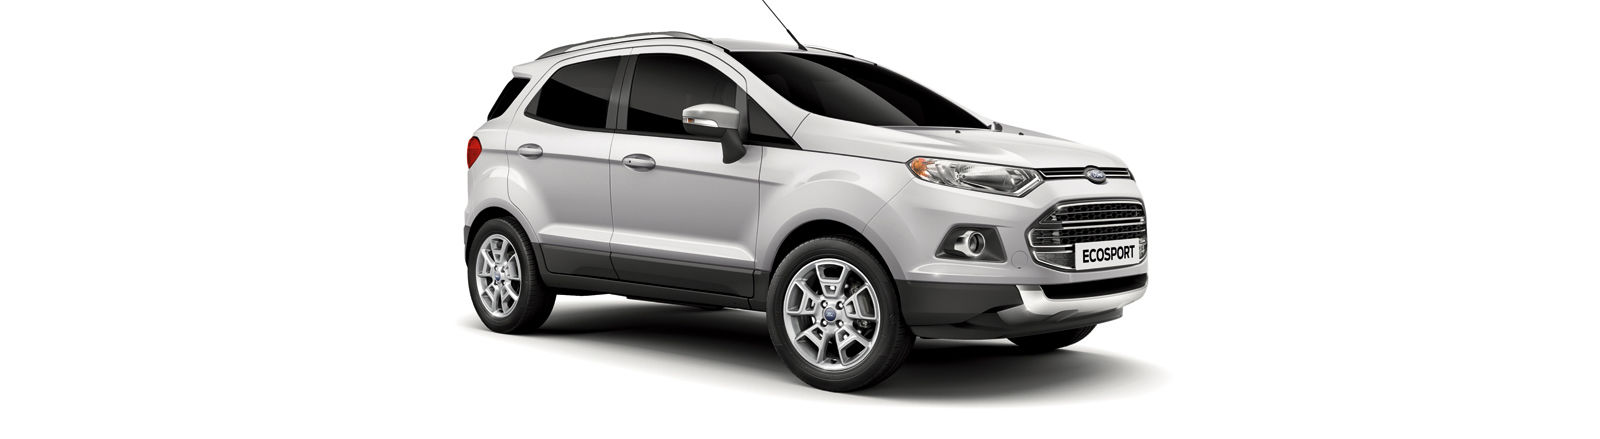 ... that offers a happy compromise between white and black when it comes to showing up dirt. Equally with silver being among our most popular car colours ...  sc 1 st  Carwow & Ford EcoSport colours guide and prices   carwow markmcfarlin.com